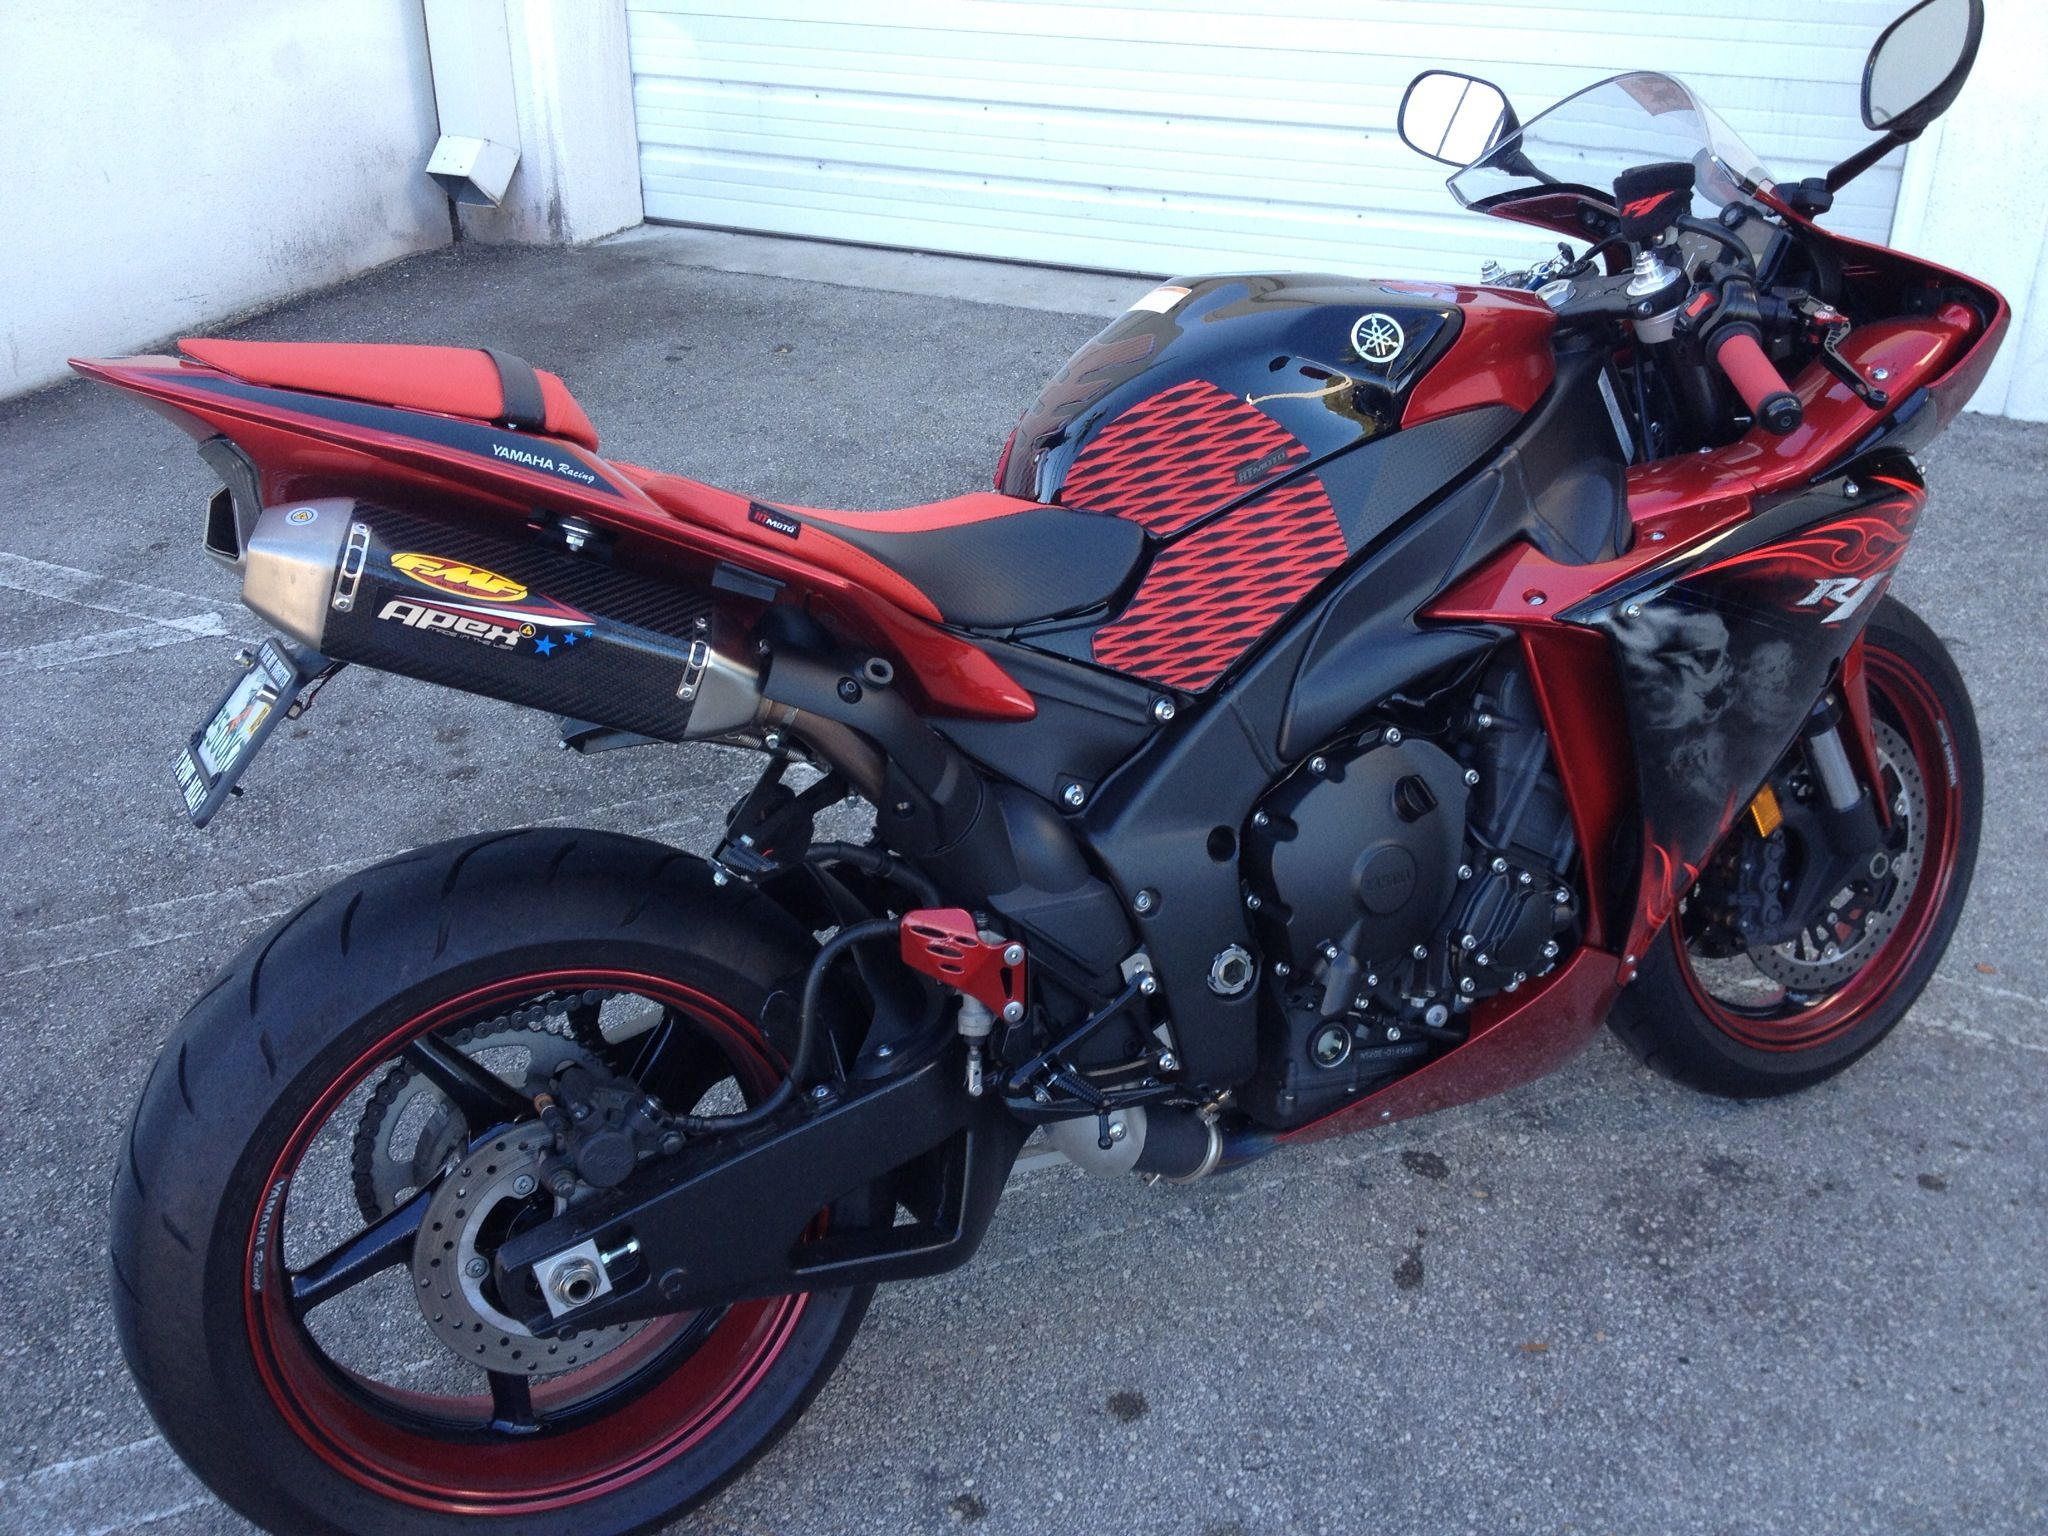 Bike sticker design online -  Candy Red Black Metallic Powder Coated Rear Sets Wheels Along W Custom Seat Covers Traction Pads Levers Grips Wheels Stripes Body Stickers